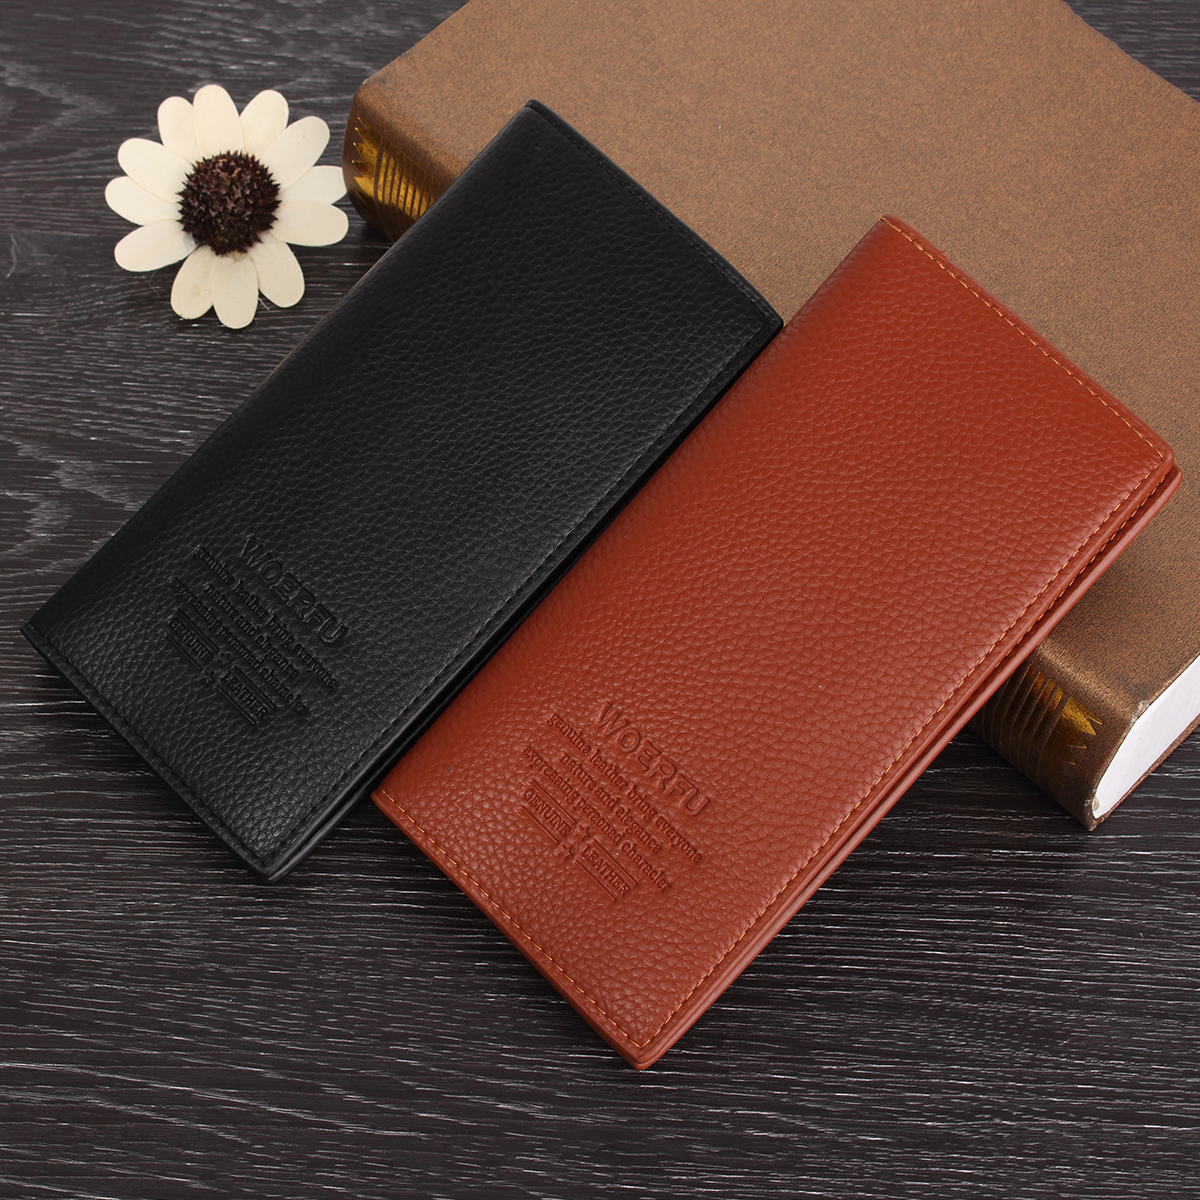 Business Mens Long Casual Black Wallet Pockets Card Holder Clutch Bifold Purse,Coffee color